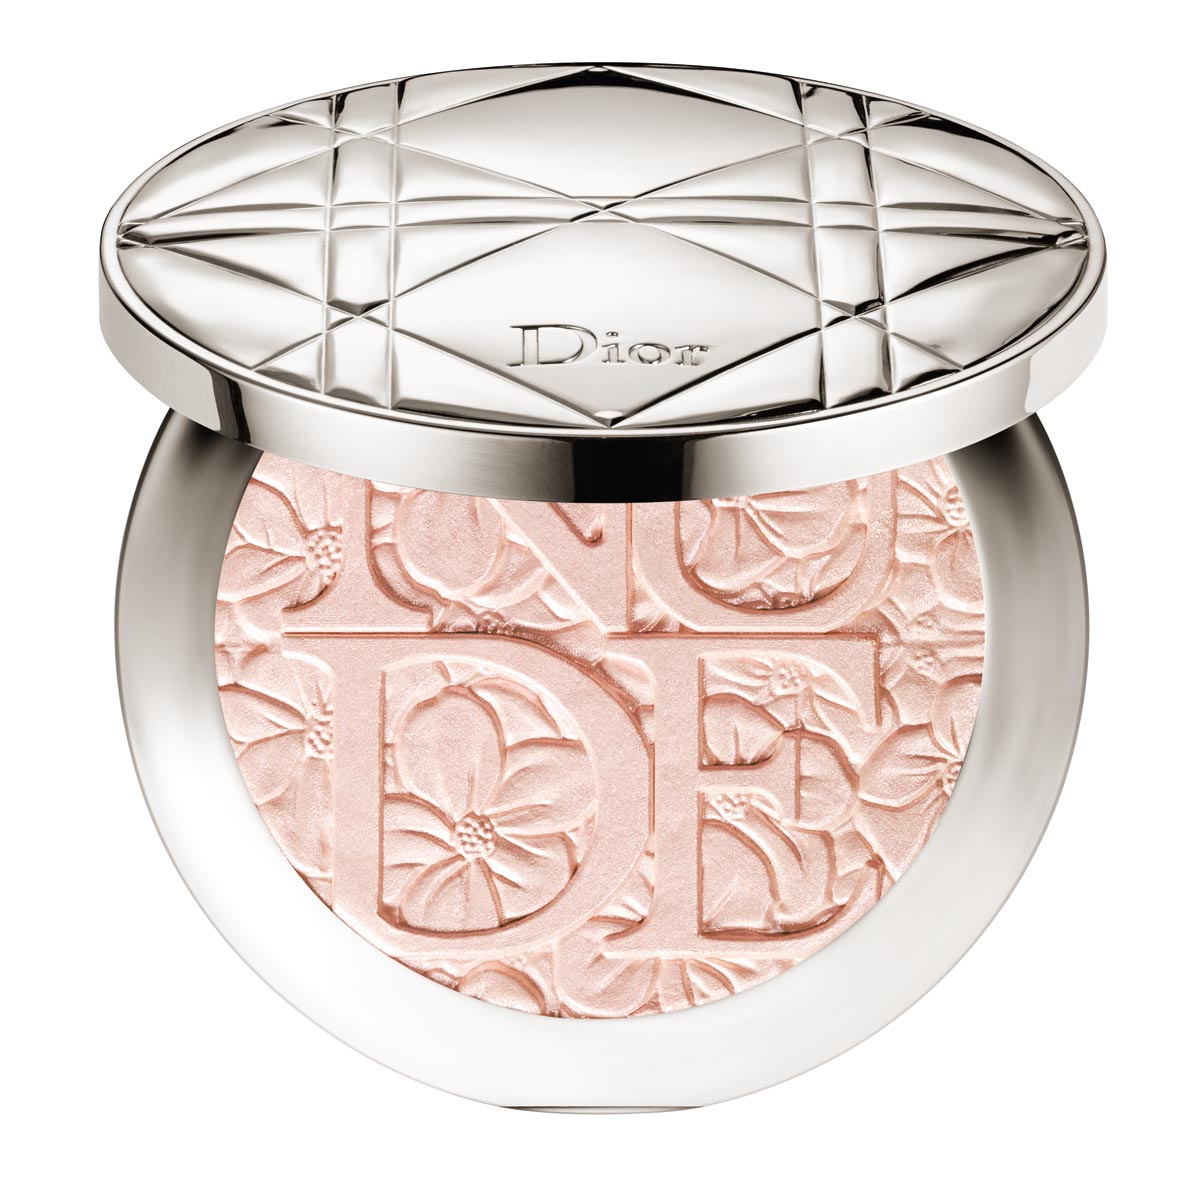 DIOR Glowing Gardens Diorskin Nude Air Glowing Pink